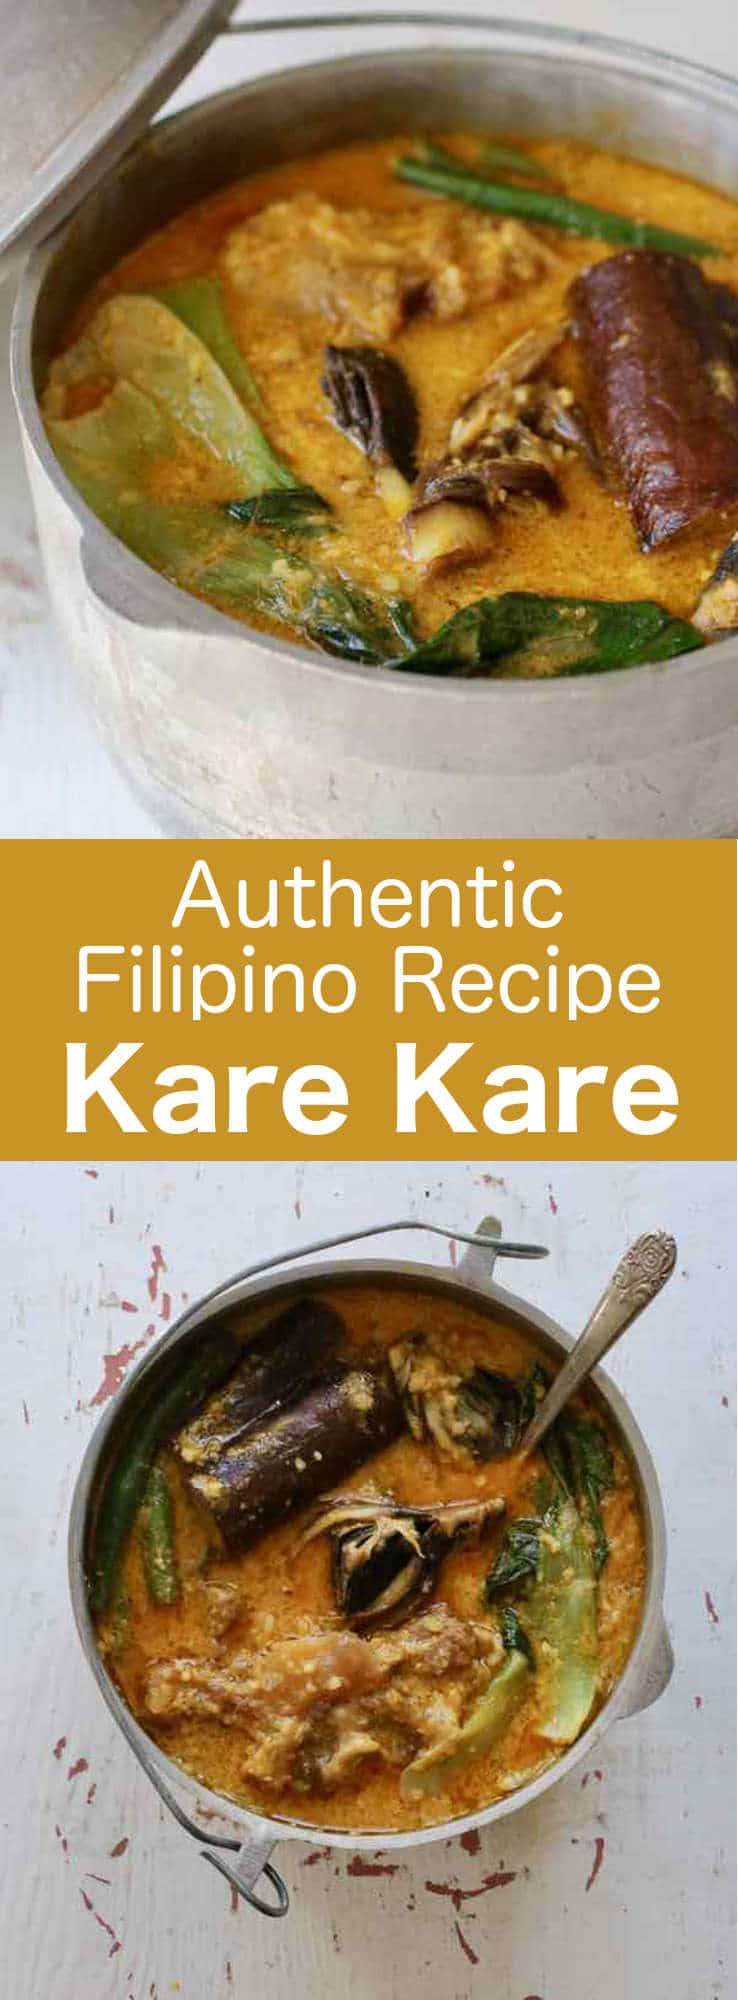 Kare kare traditional filipino recipe 196 flavors kare kare is a delicious filipino oxtail stew prepared with a thick peanut sauce which kare kare recipe forumfinder Image collections